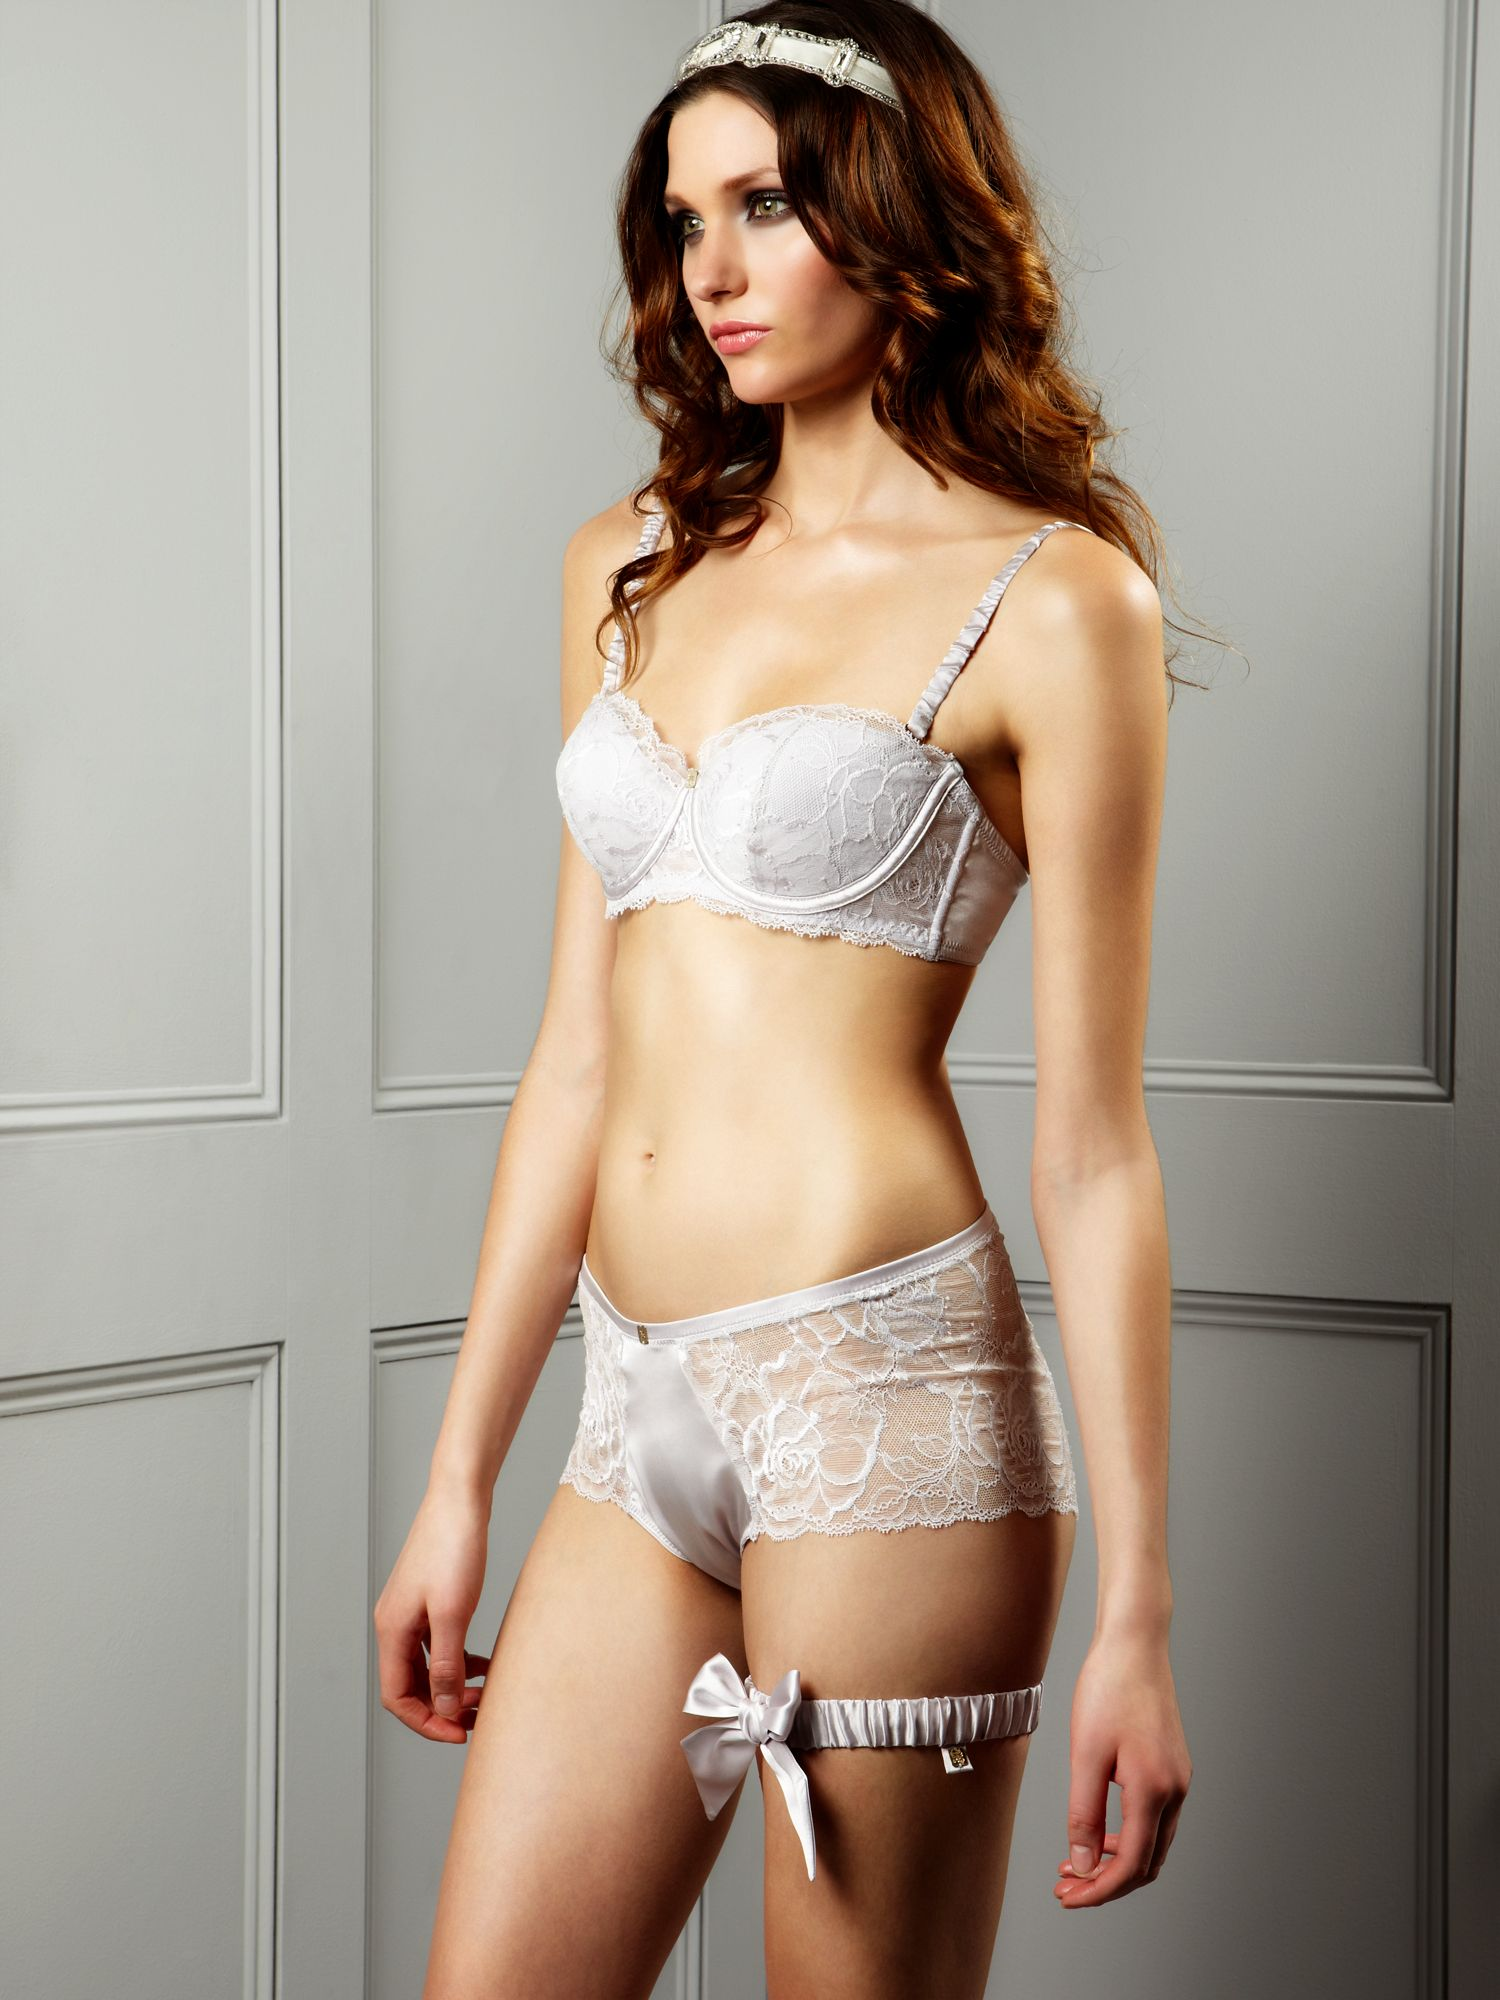 Rose of Persia Lingerie Range